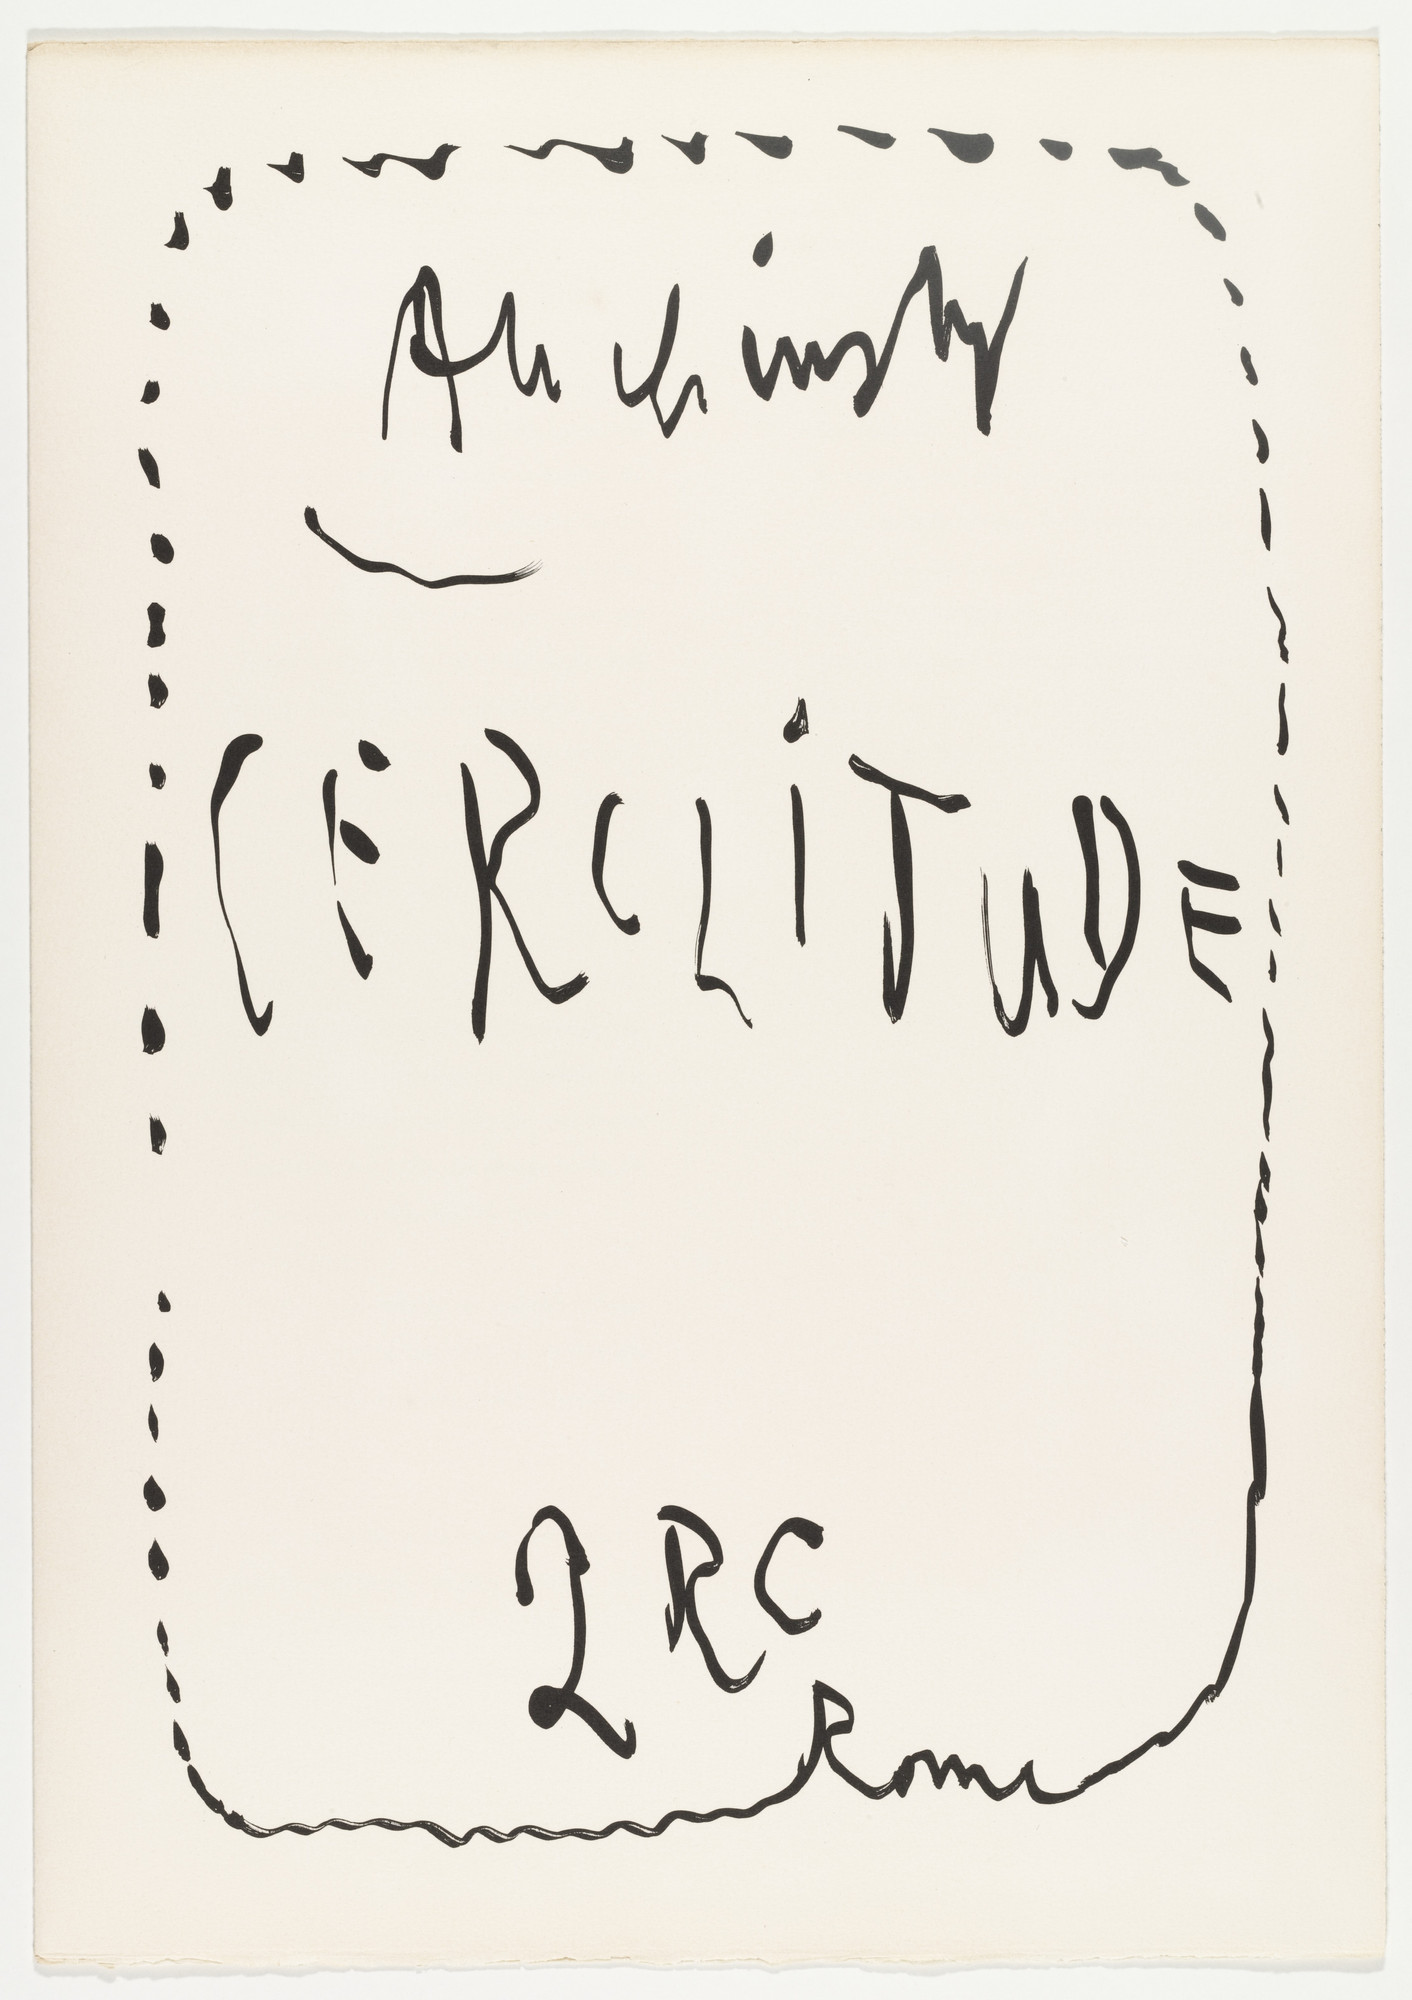 Pierre Alechinsky. Cerclitude. 1973 (Published 1974)